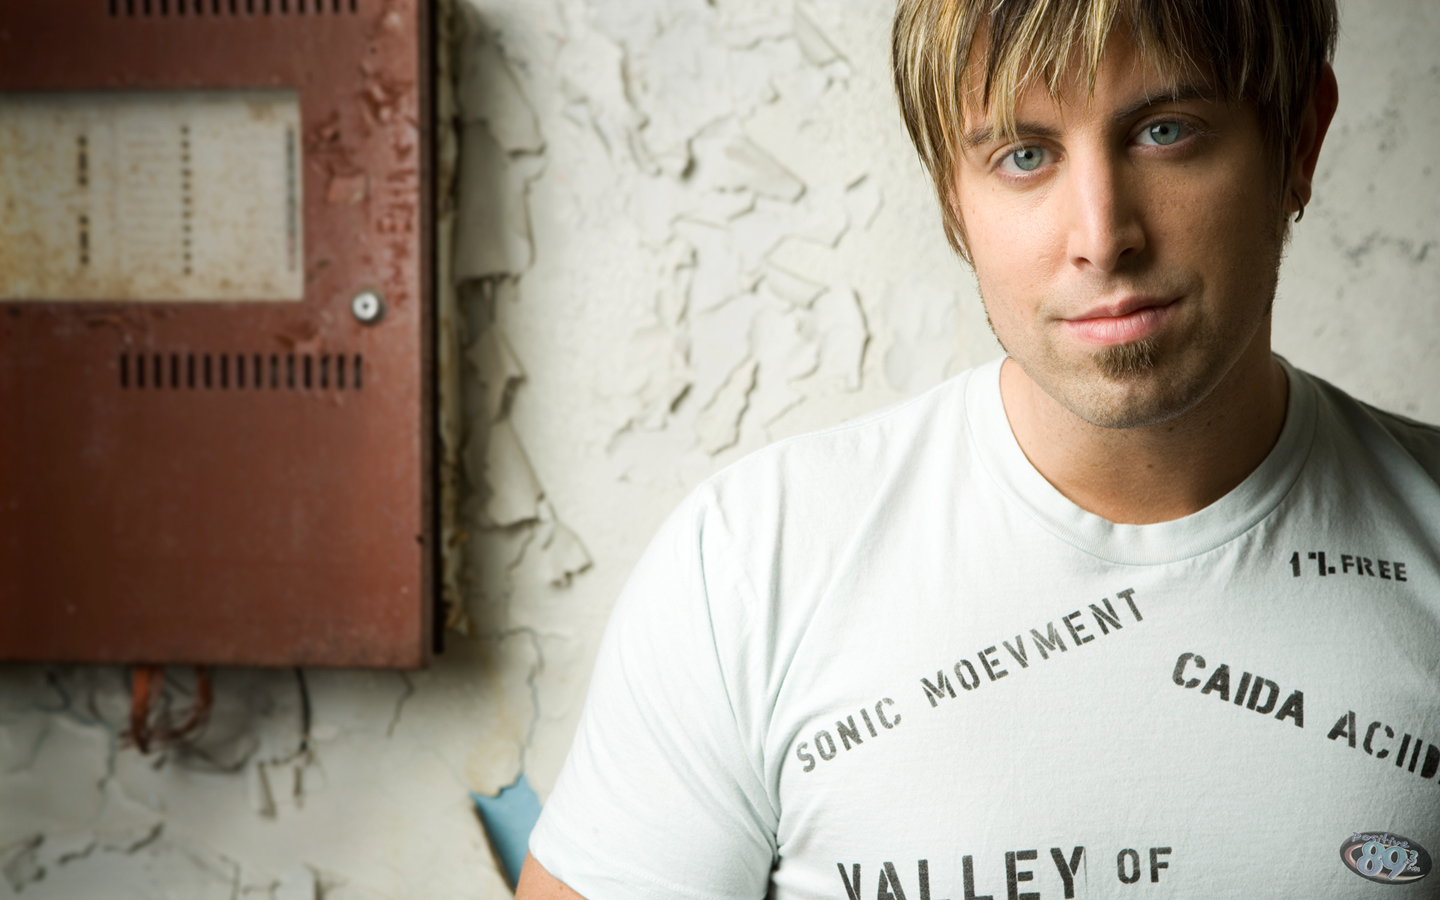 Jeremy camp restored wallpaper christian wallpapers and.